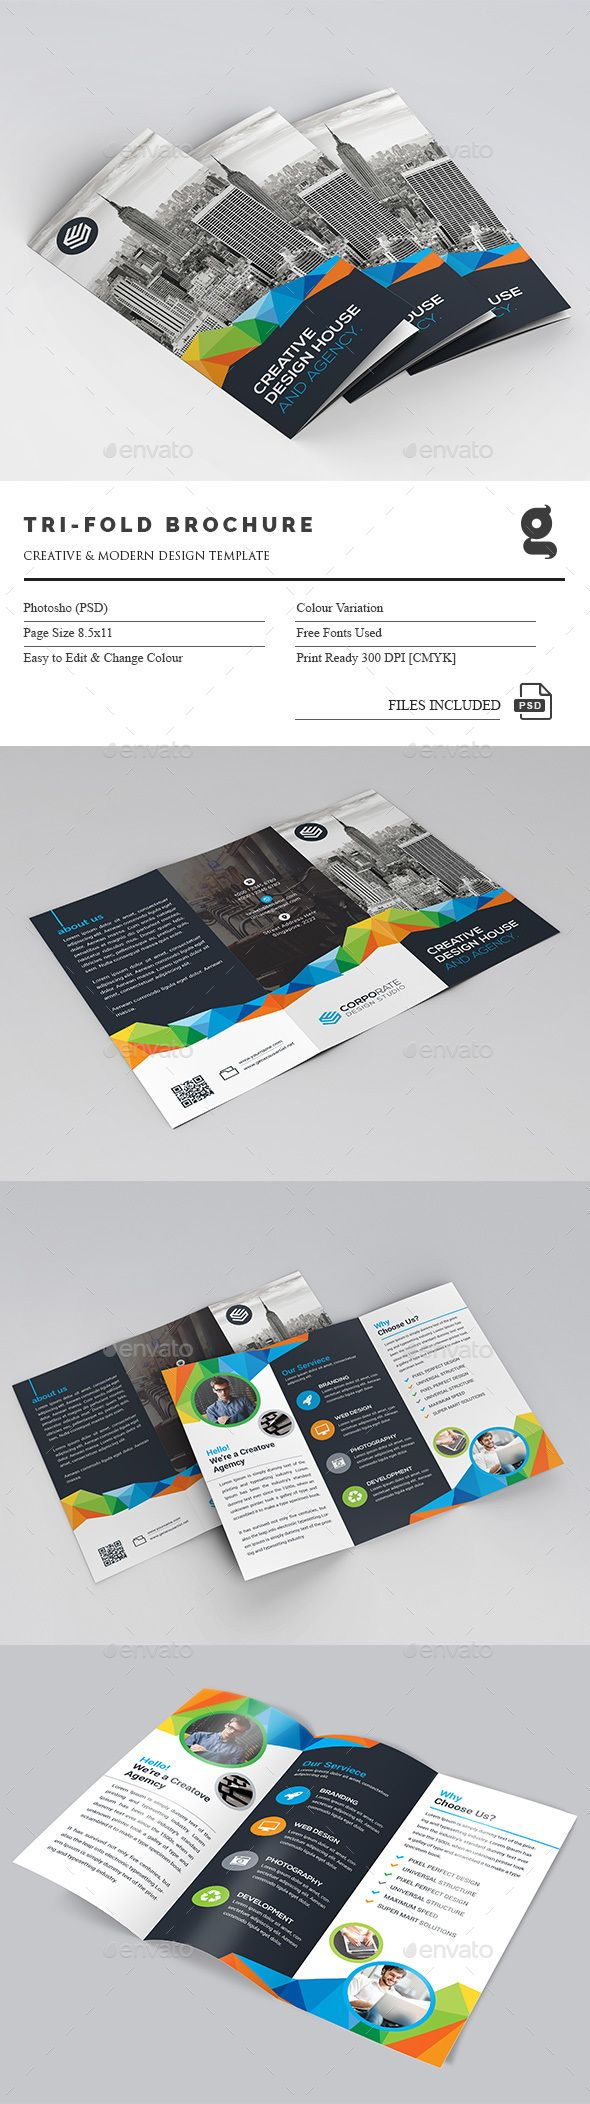 Tri-Fold Brochure Template PSD. Download here: http://graphicriver.net/item/trifold-brochure/15064313?ref=ksioks                                                                                                                                                     More